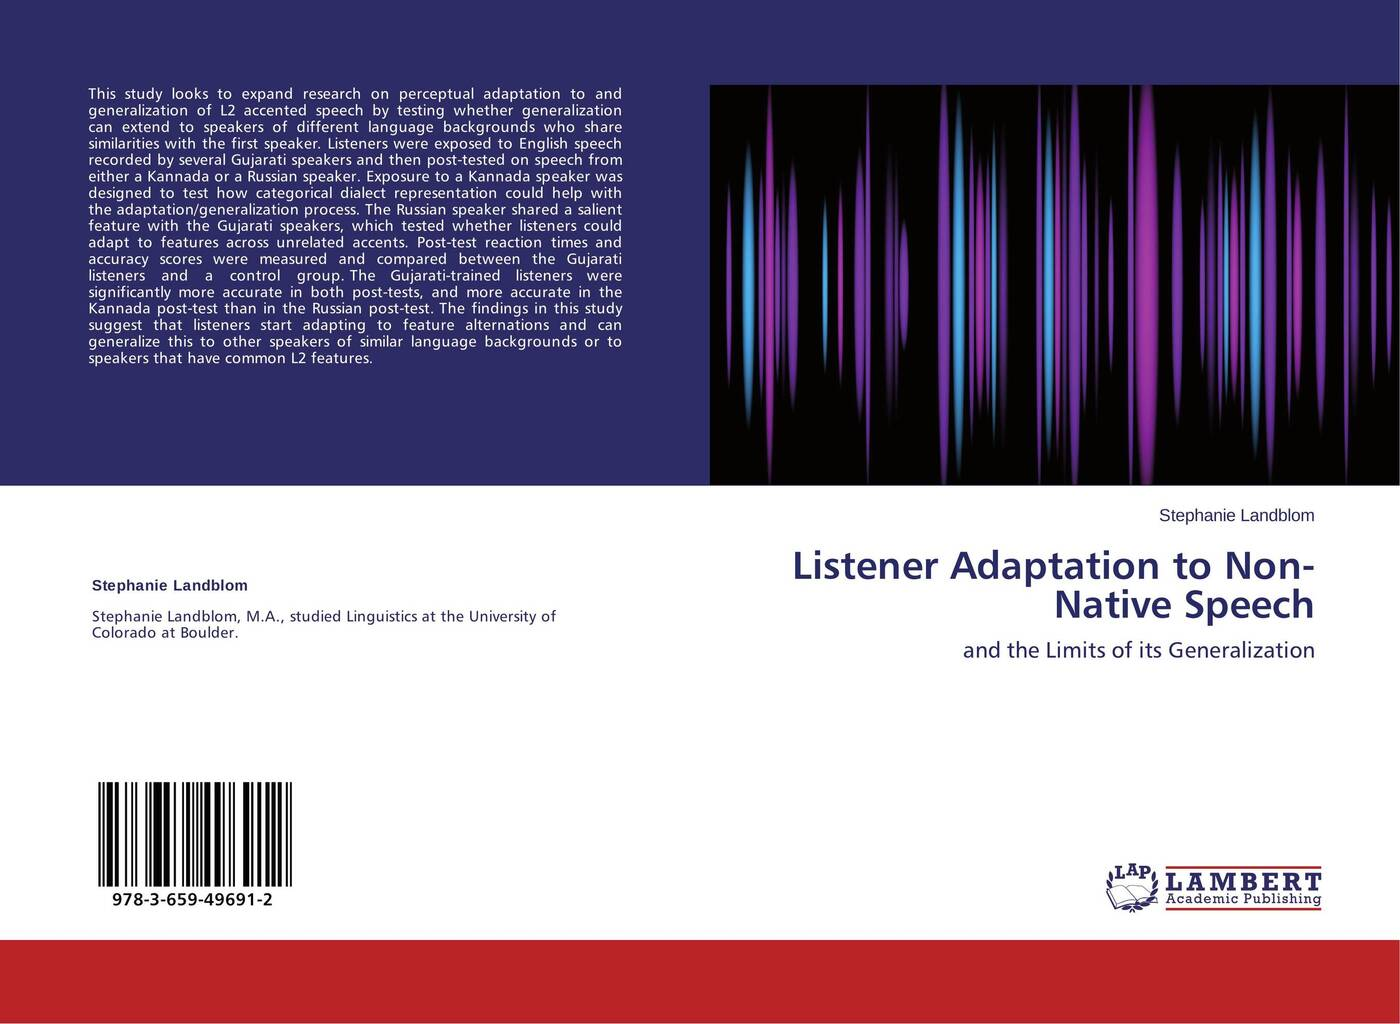 Stephanie Landblom Listener Adaptation to Non-Native Speech fm radio language and its effect on the young listeners